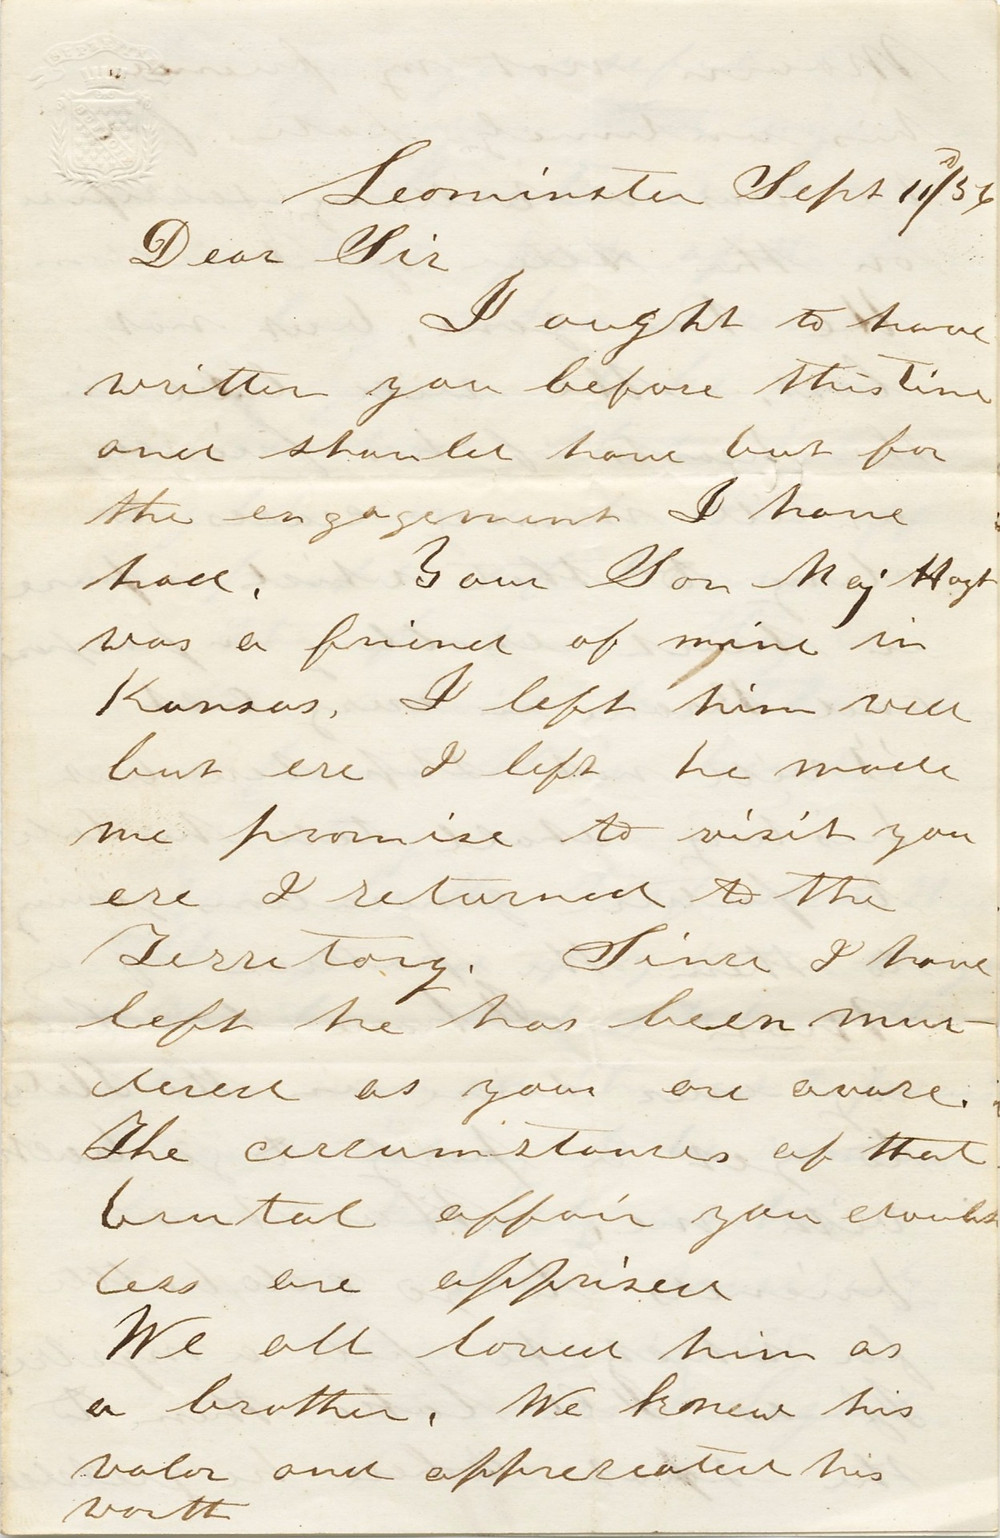 """""""Letter to the parents of David Hoyt from James F. Legate"""" by James F. Legate, American, 1829 - 1902 is marked with CC0 1.0"""